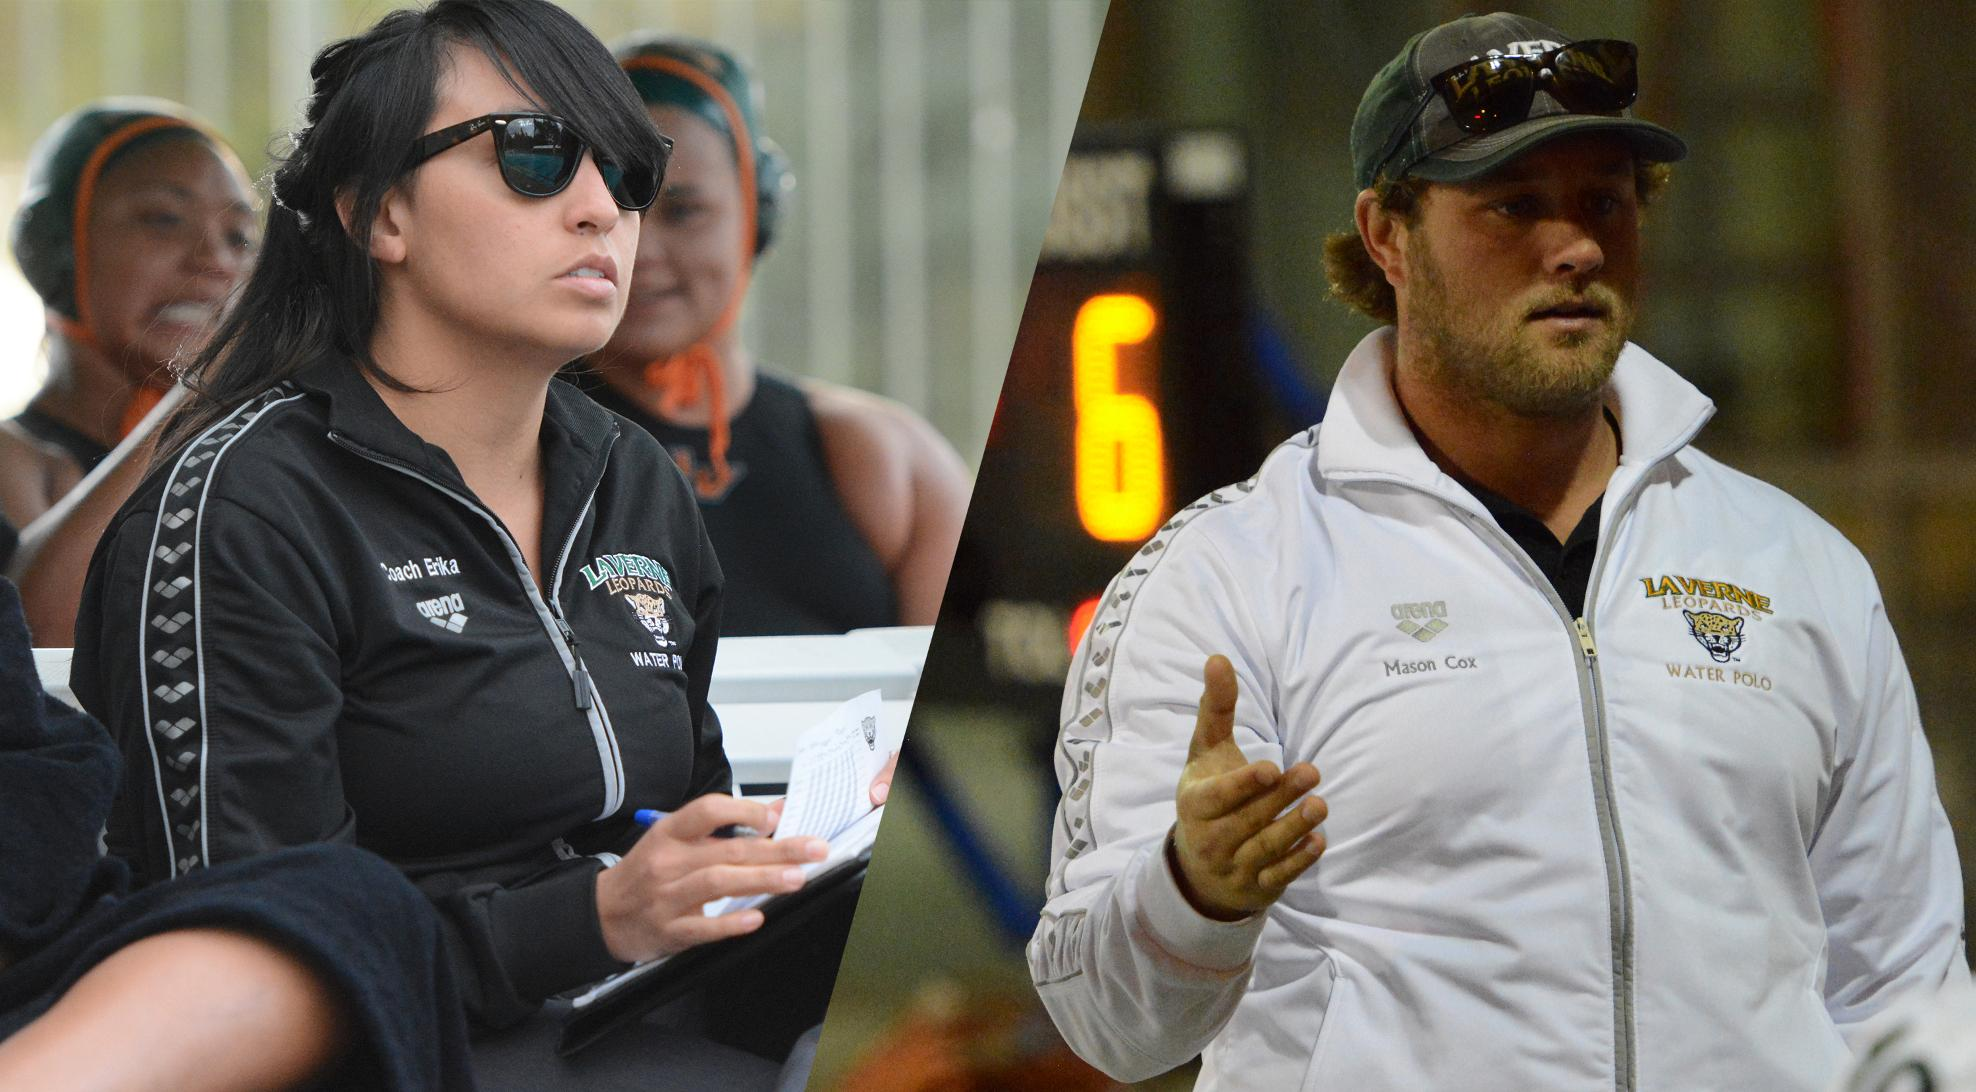 Cox, Vargas tabbed to lead water polo programs in 2016-17